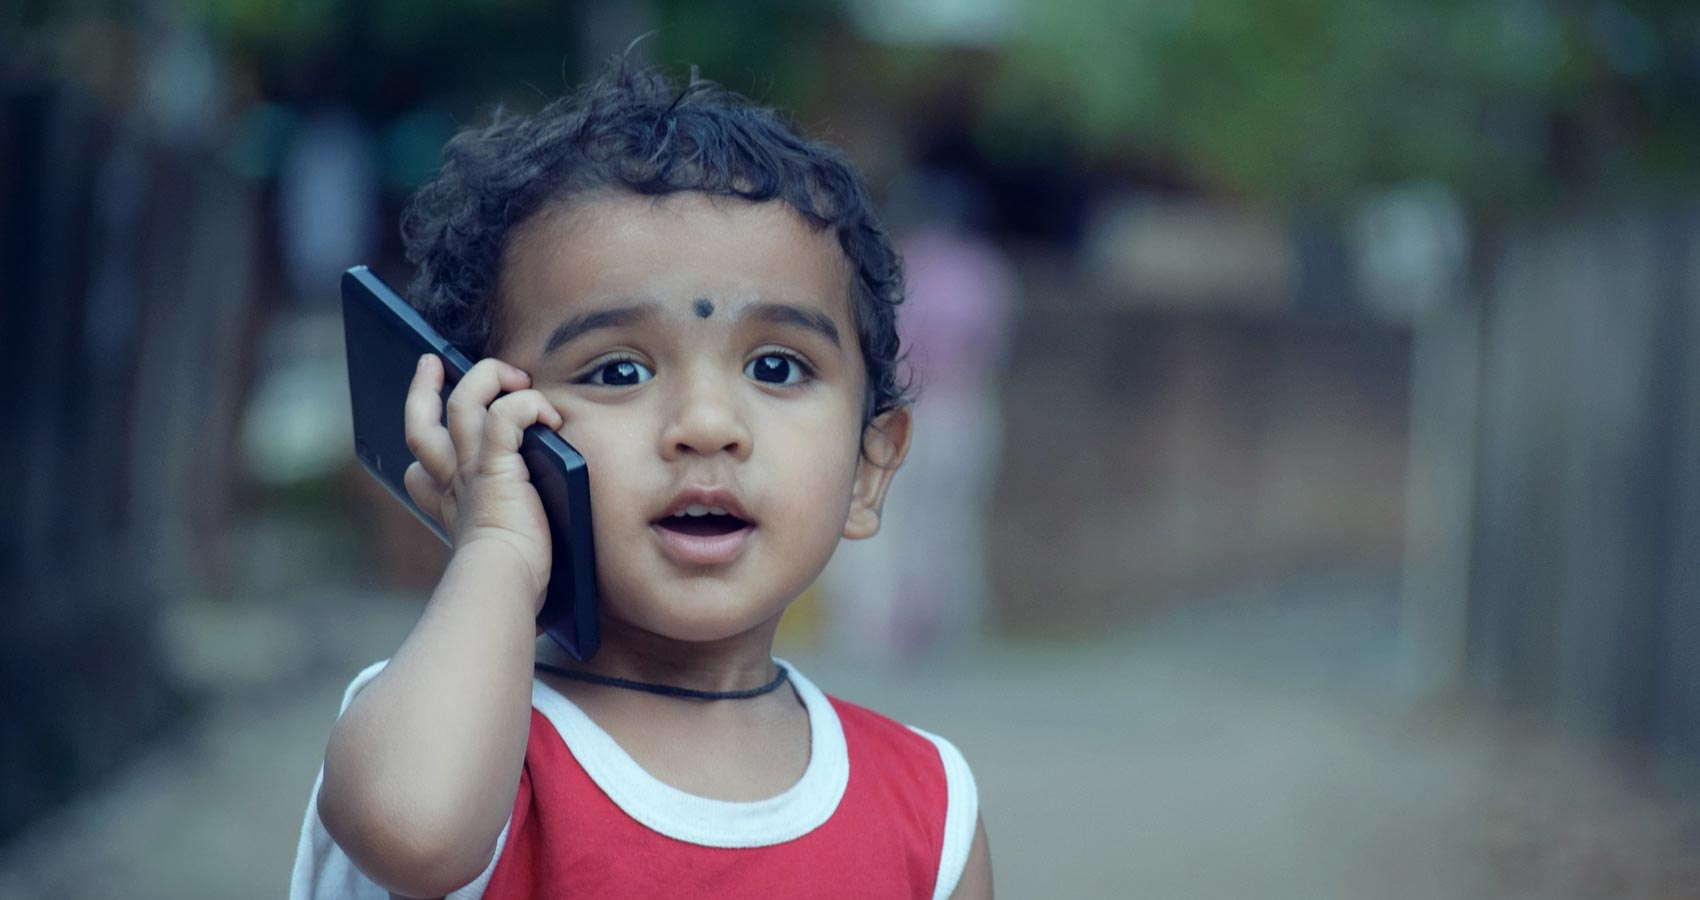 Unsafe Digital Boxes in The Hands of Children, article by Syed Tajamul Hussain at Spillwords.com